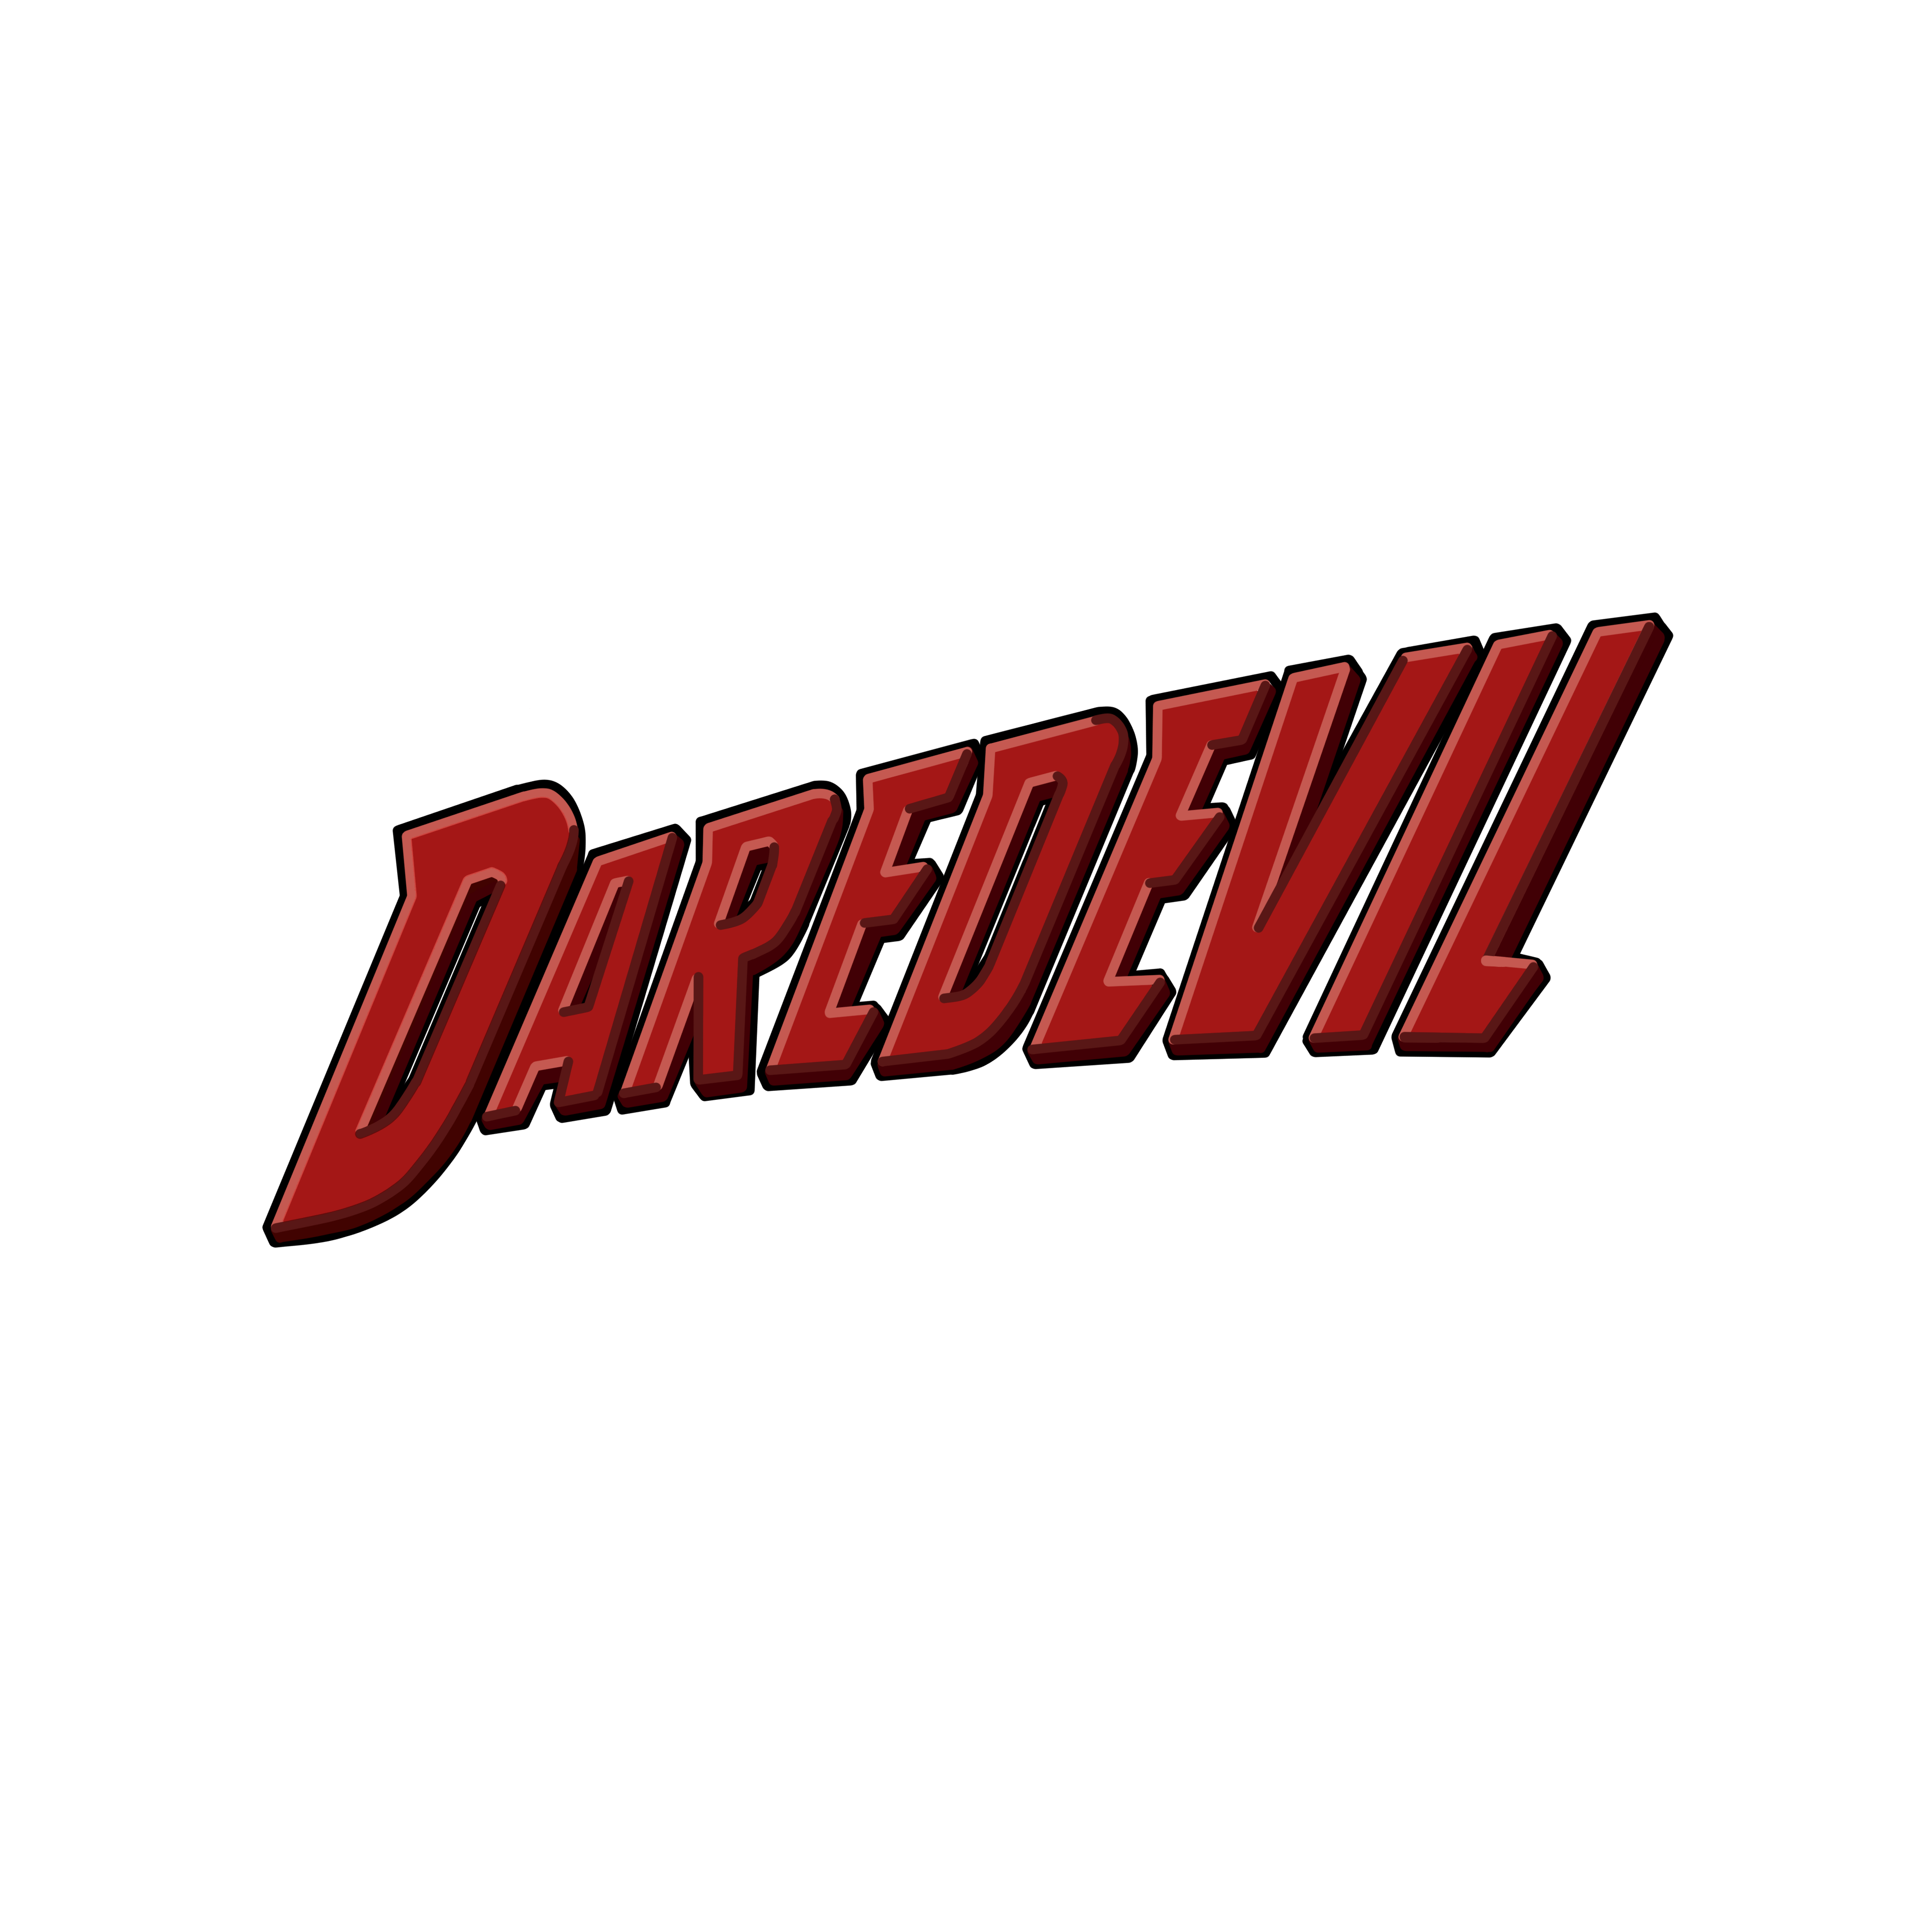 Daredevil Transparent Background PNG Image